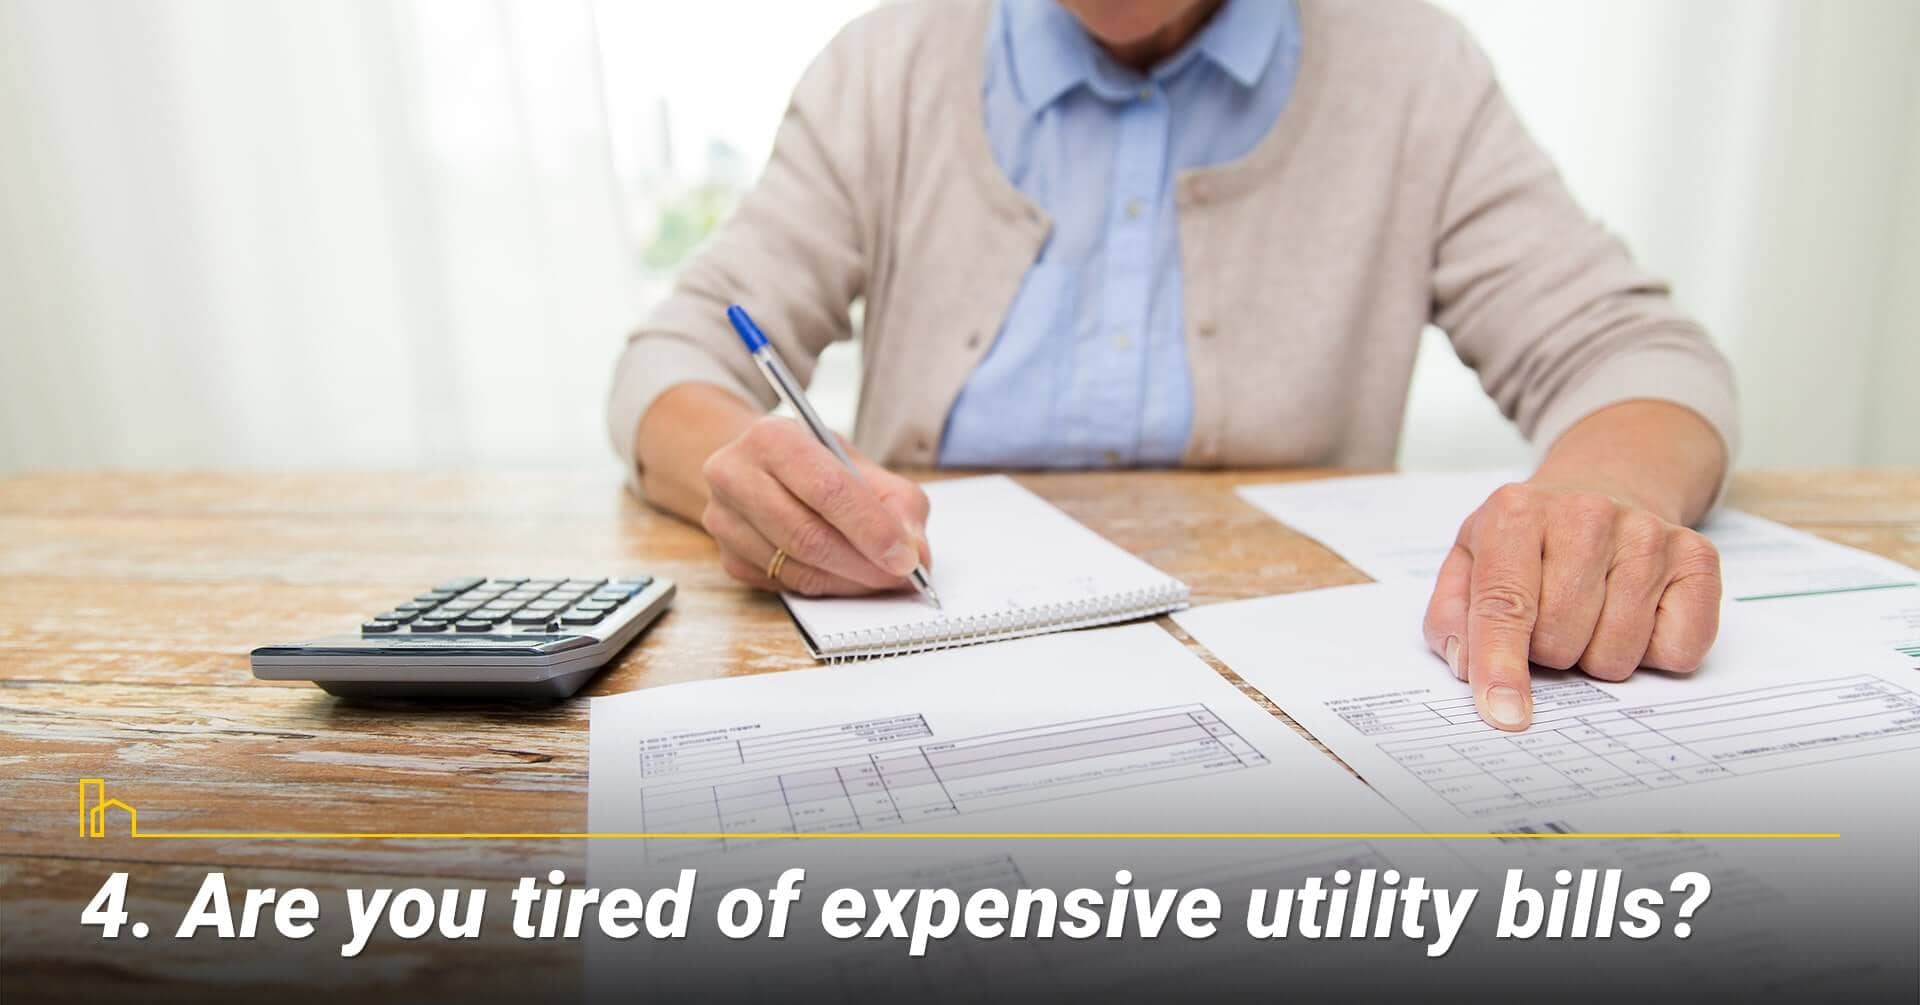 Are you tired of expensive utility bills?